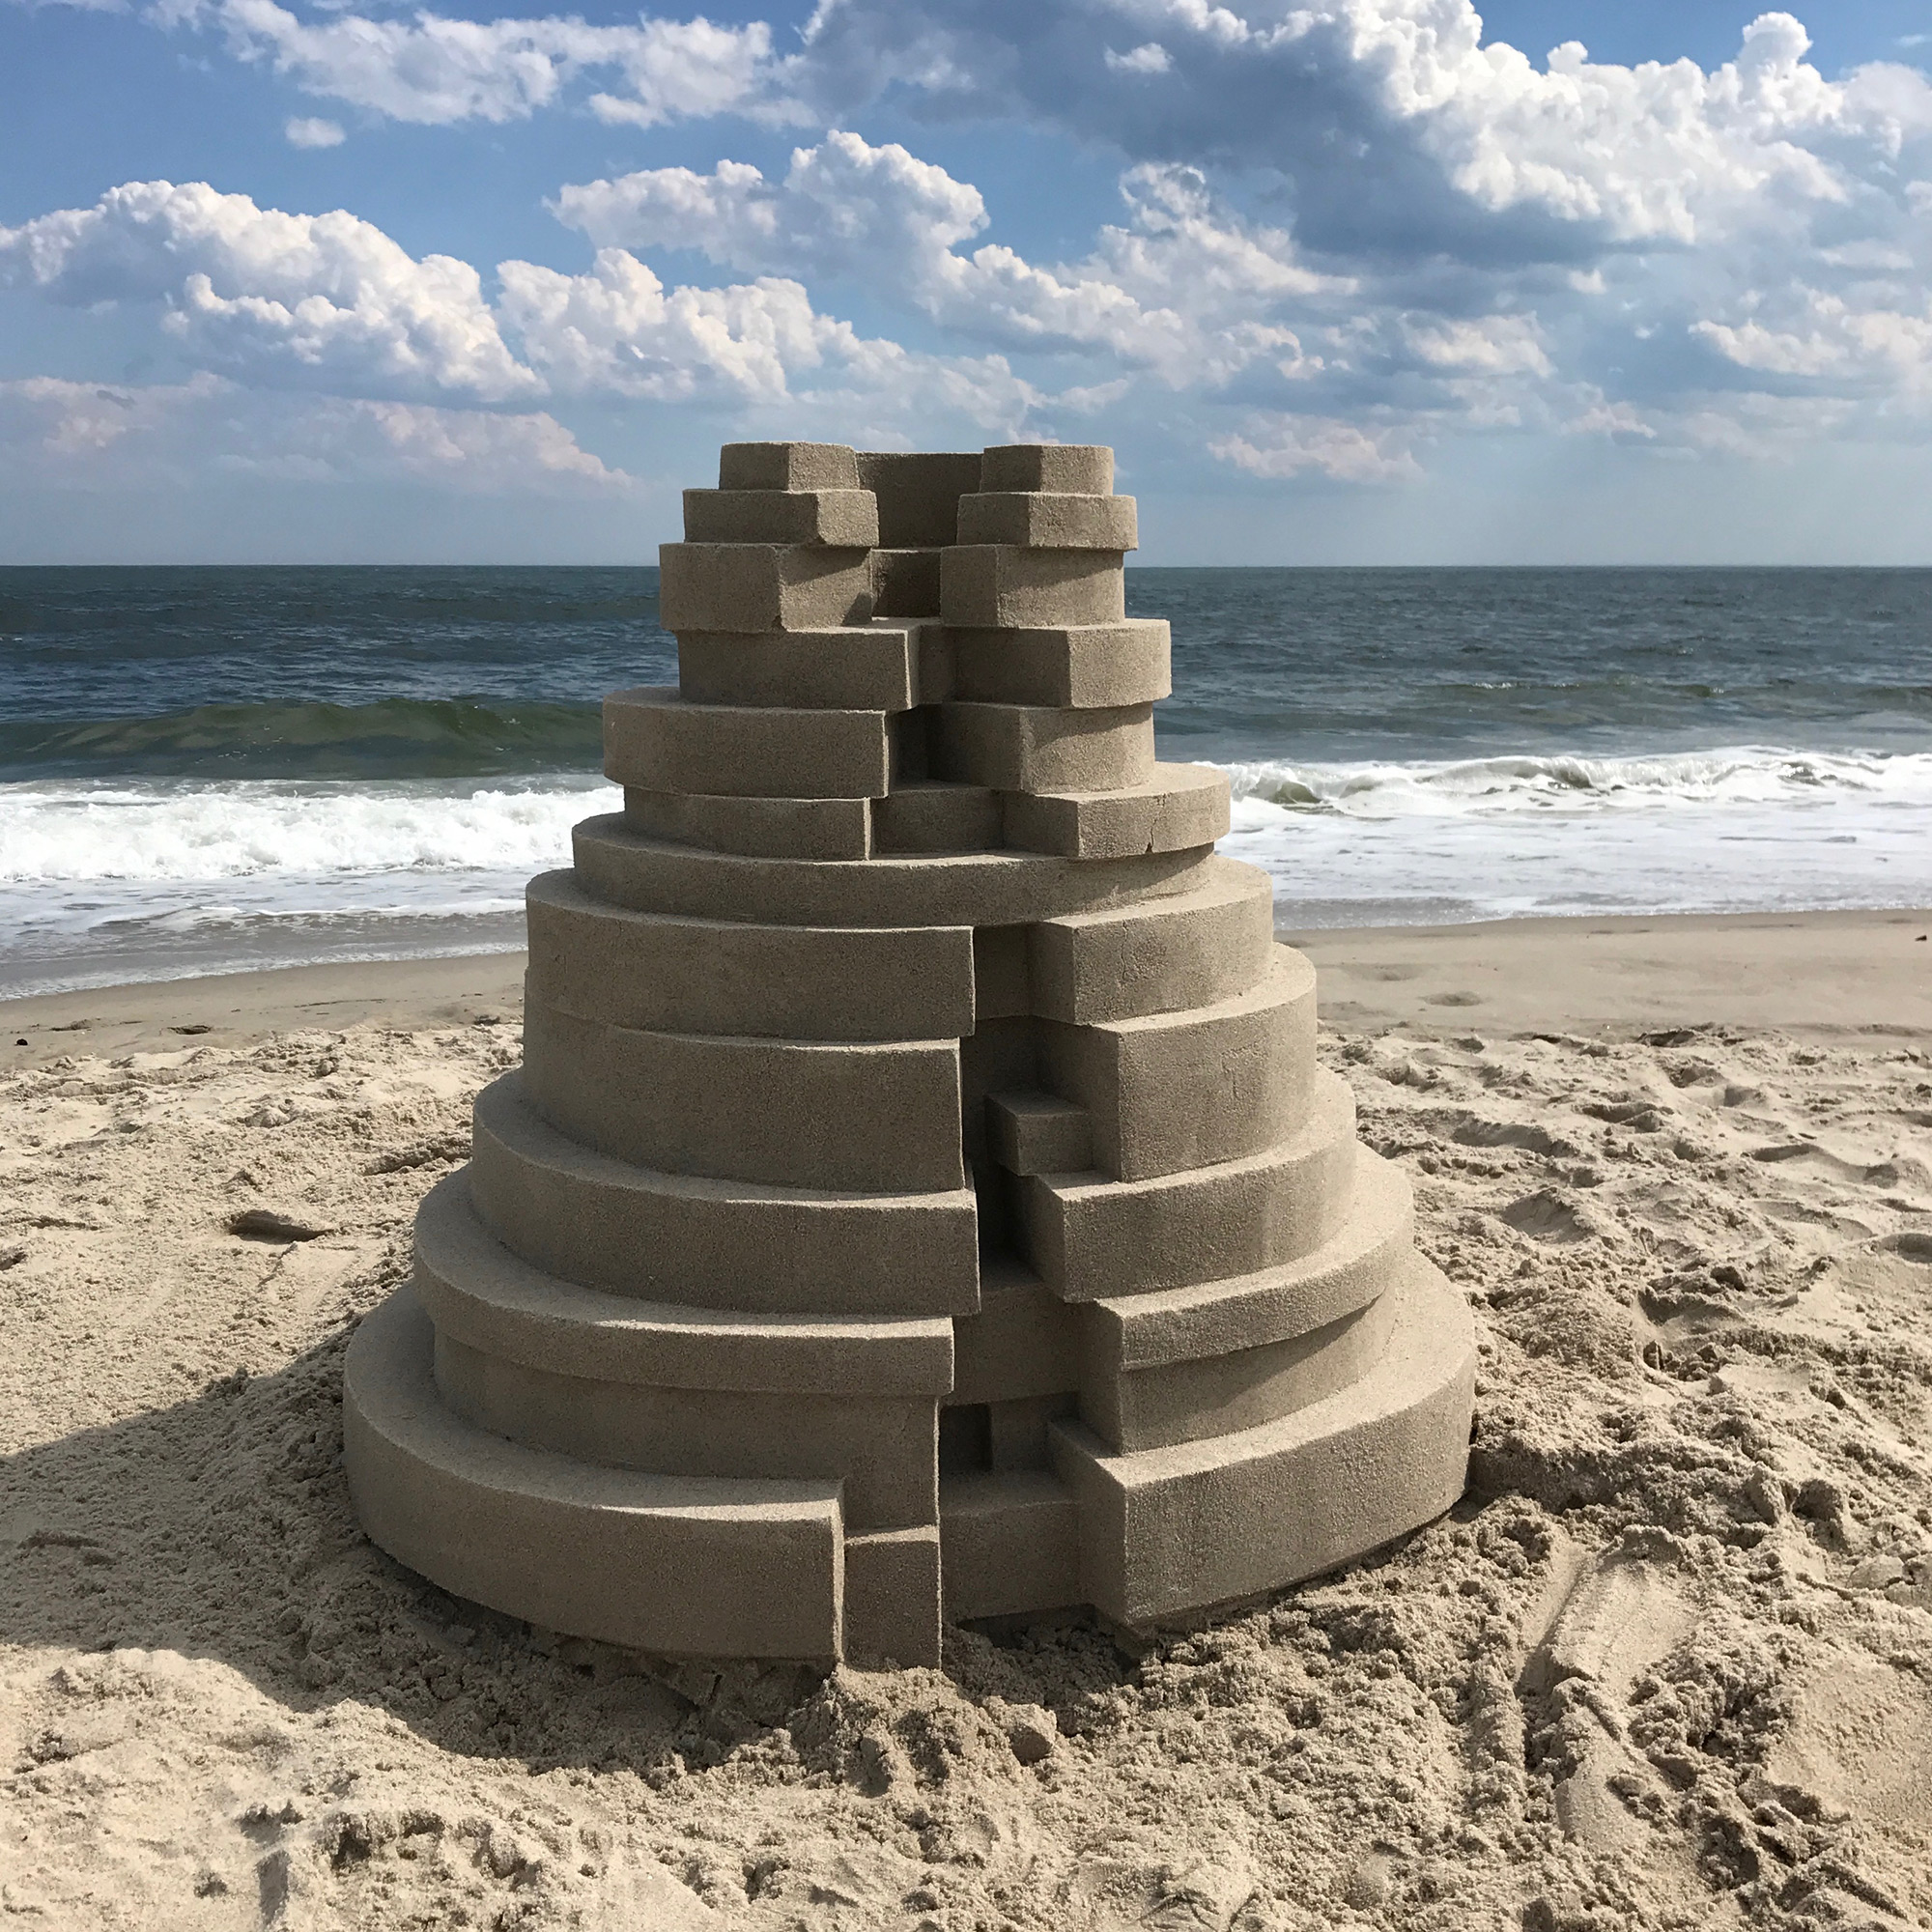 Geometric Doorways and Angular Turrets Form Sand Fortresses by Calvin Seibert